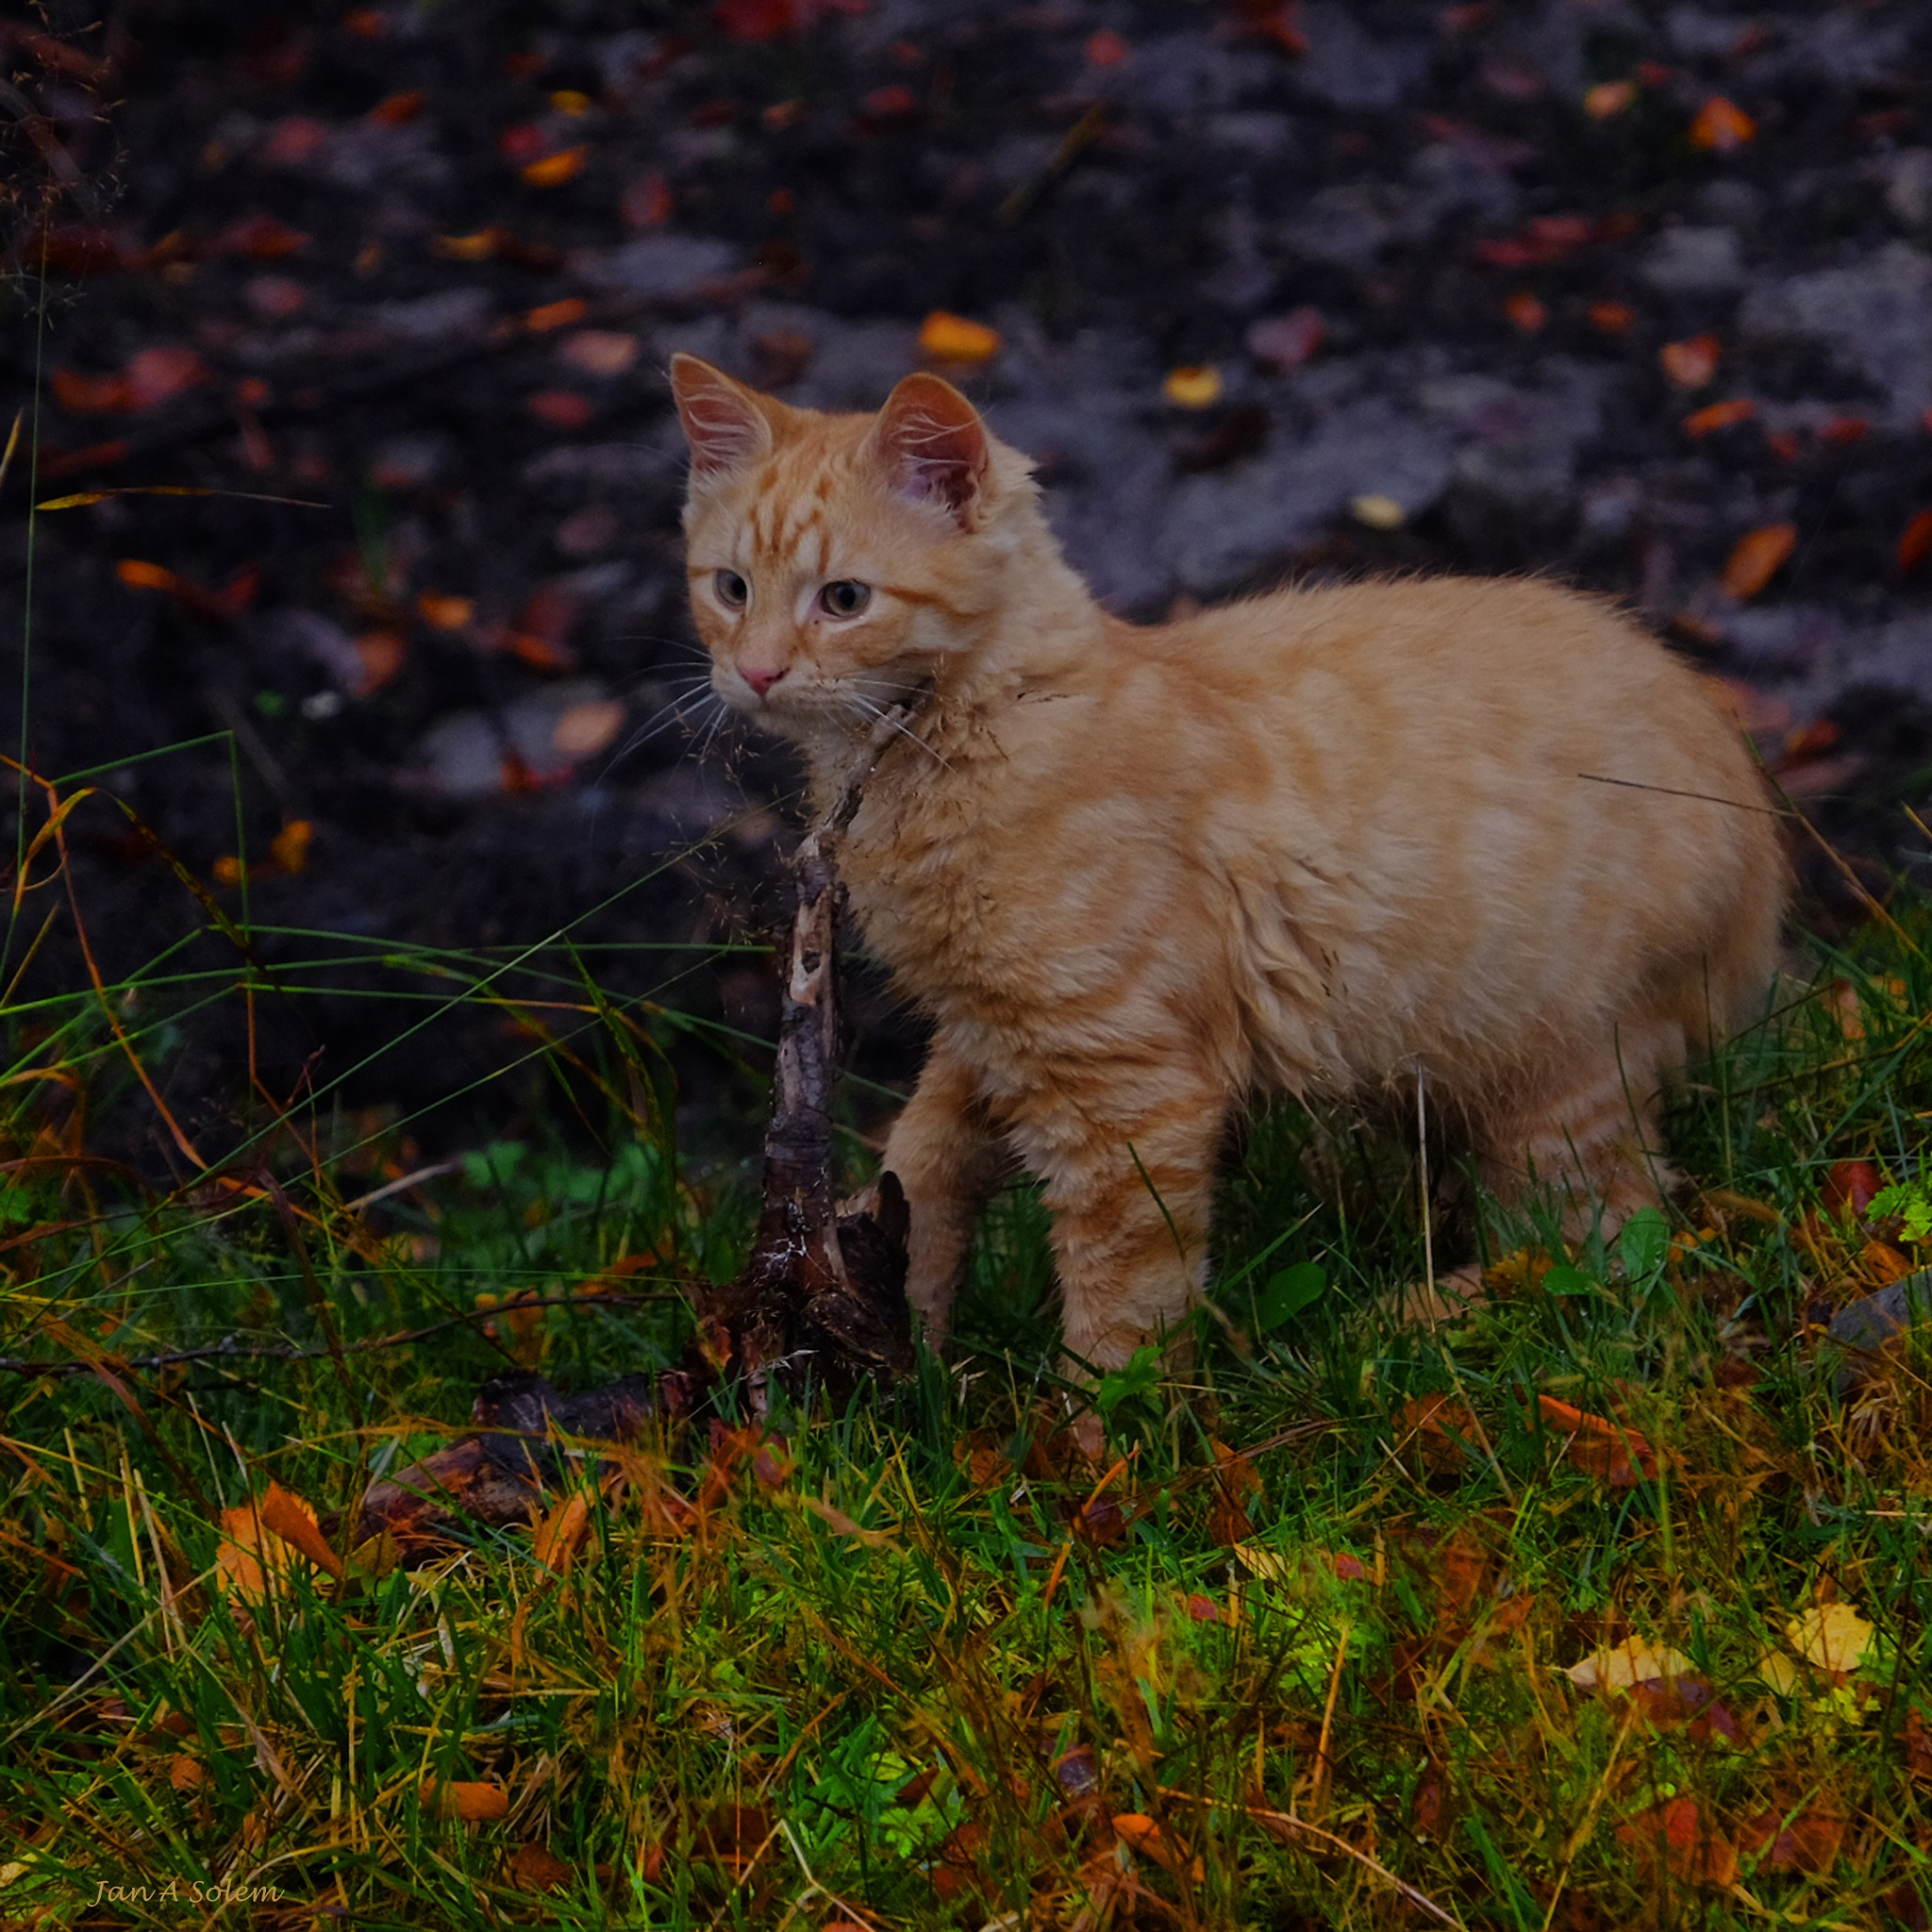 The Autumn Hunter by Jan Arvid Solem